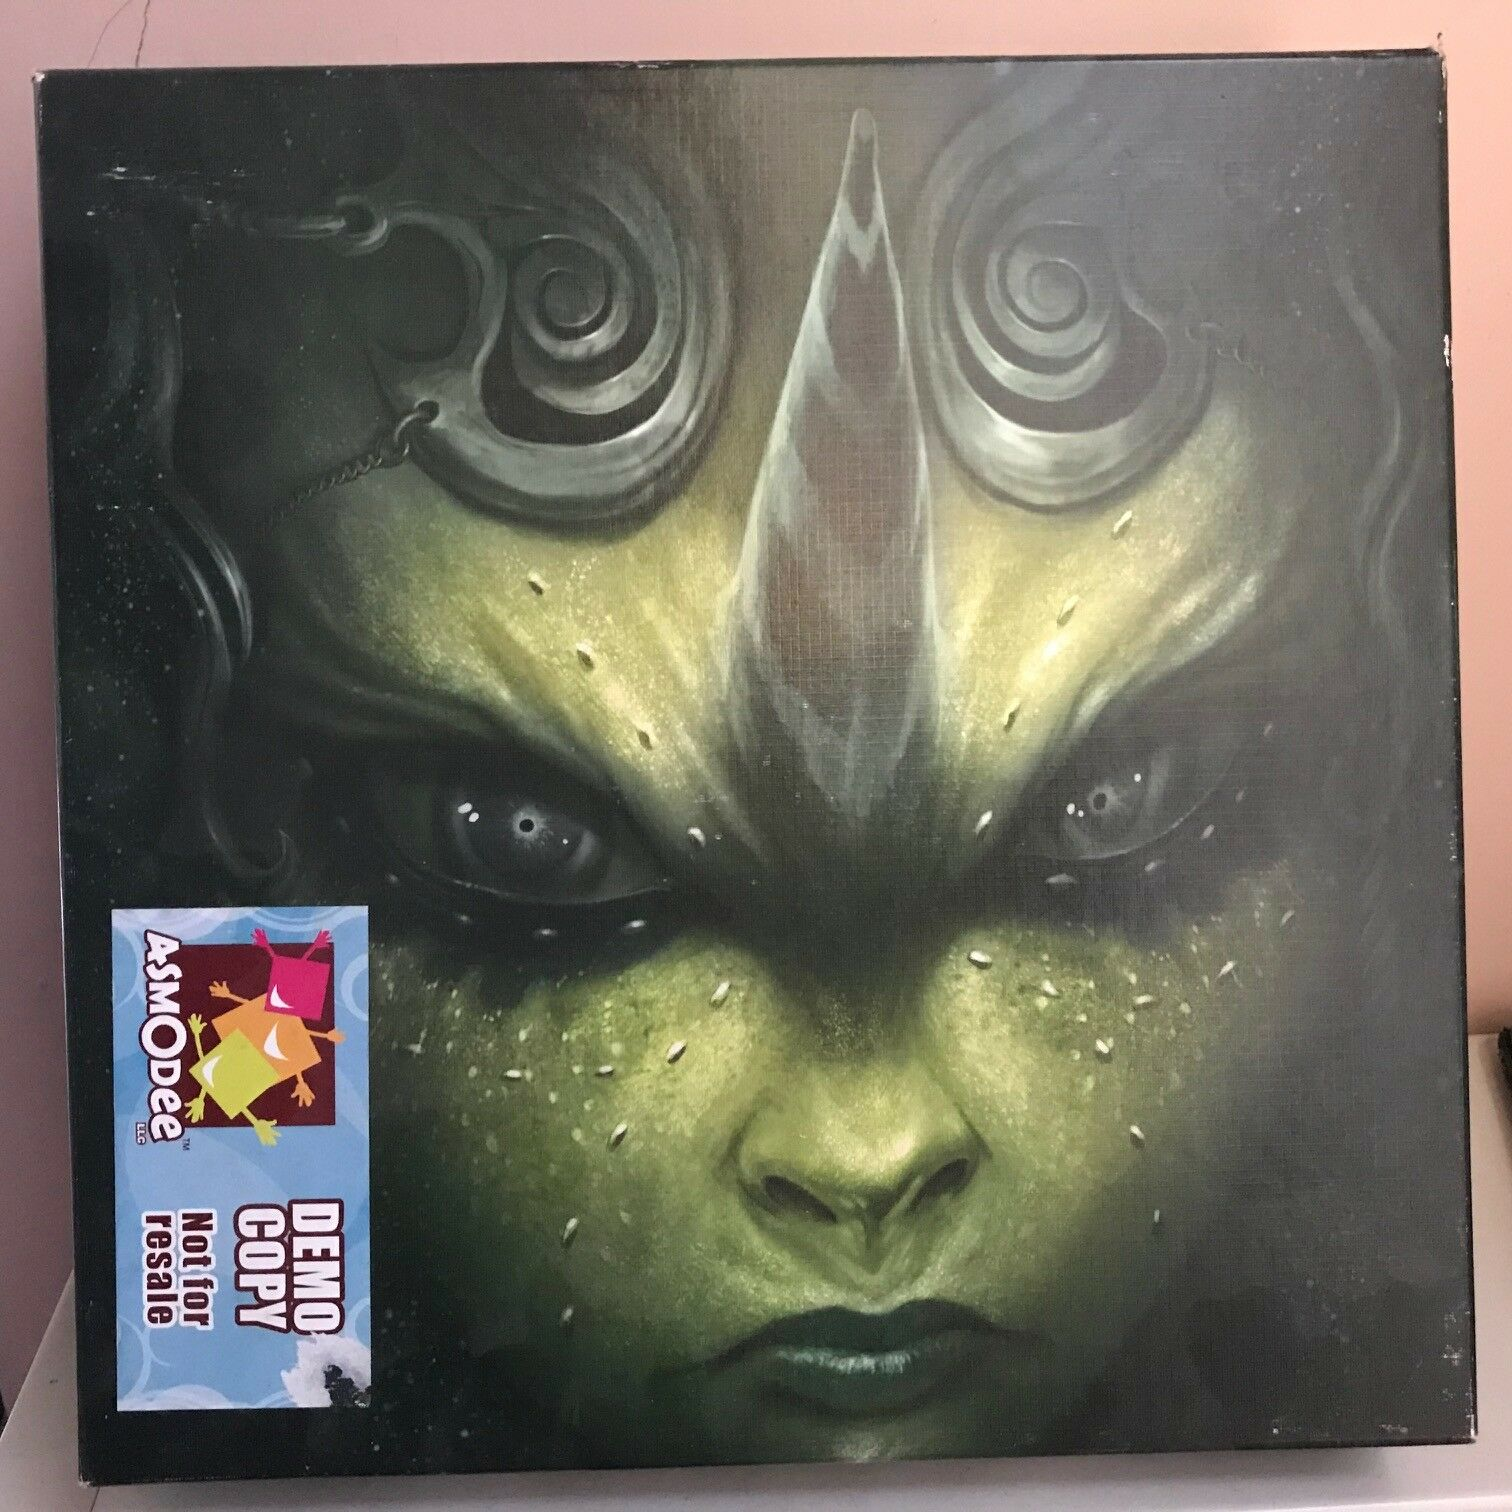 Abyss Board Game by Bombyx Raven - Collects cards for Creature Faction Powers